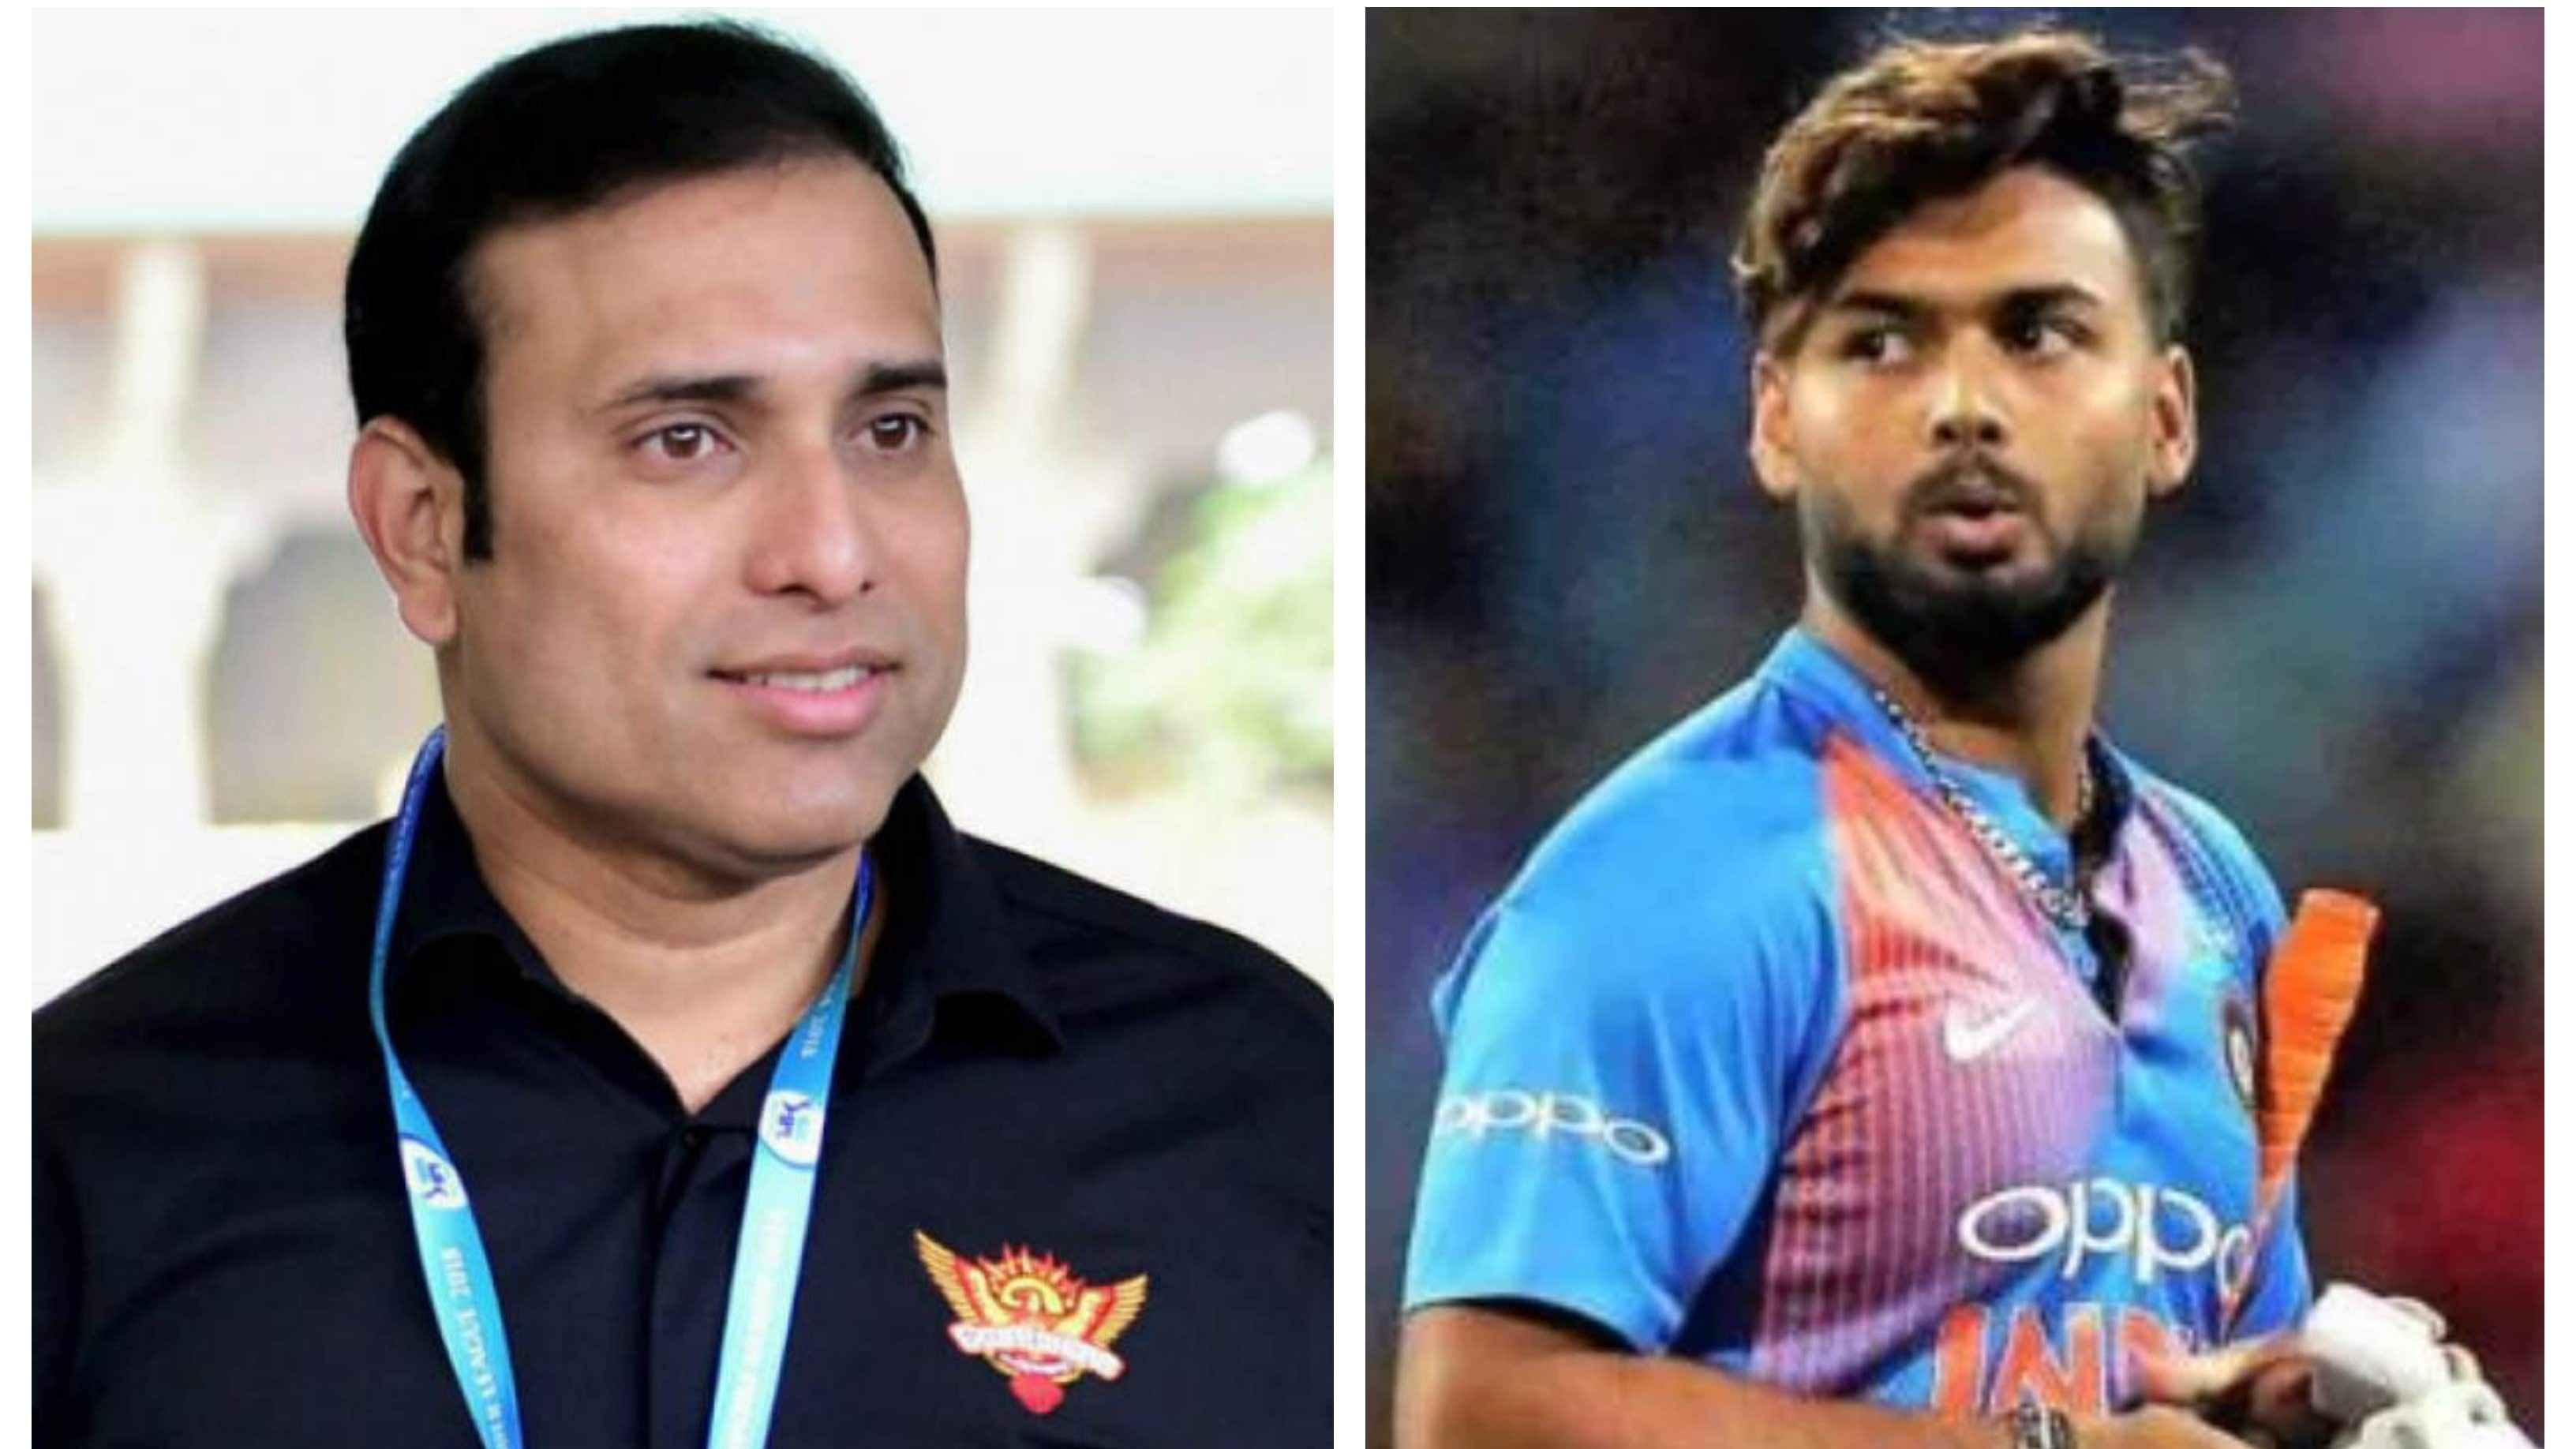 Pressure on Rishabh Pant to justify the faith of team management & selectors, says Laxman